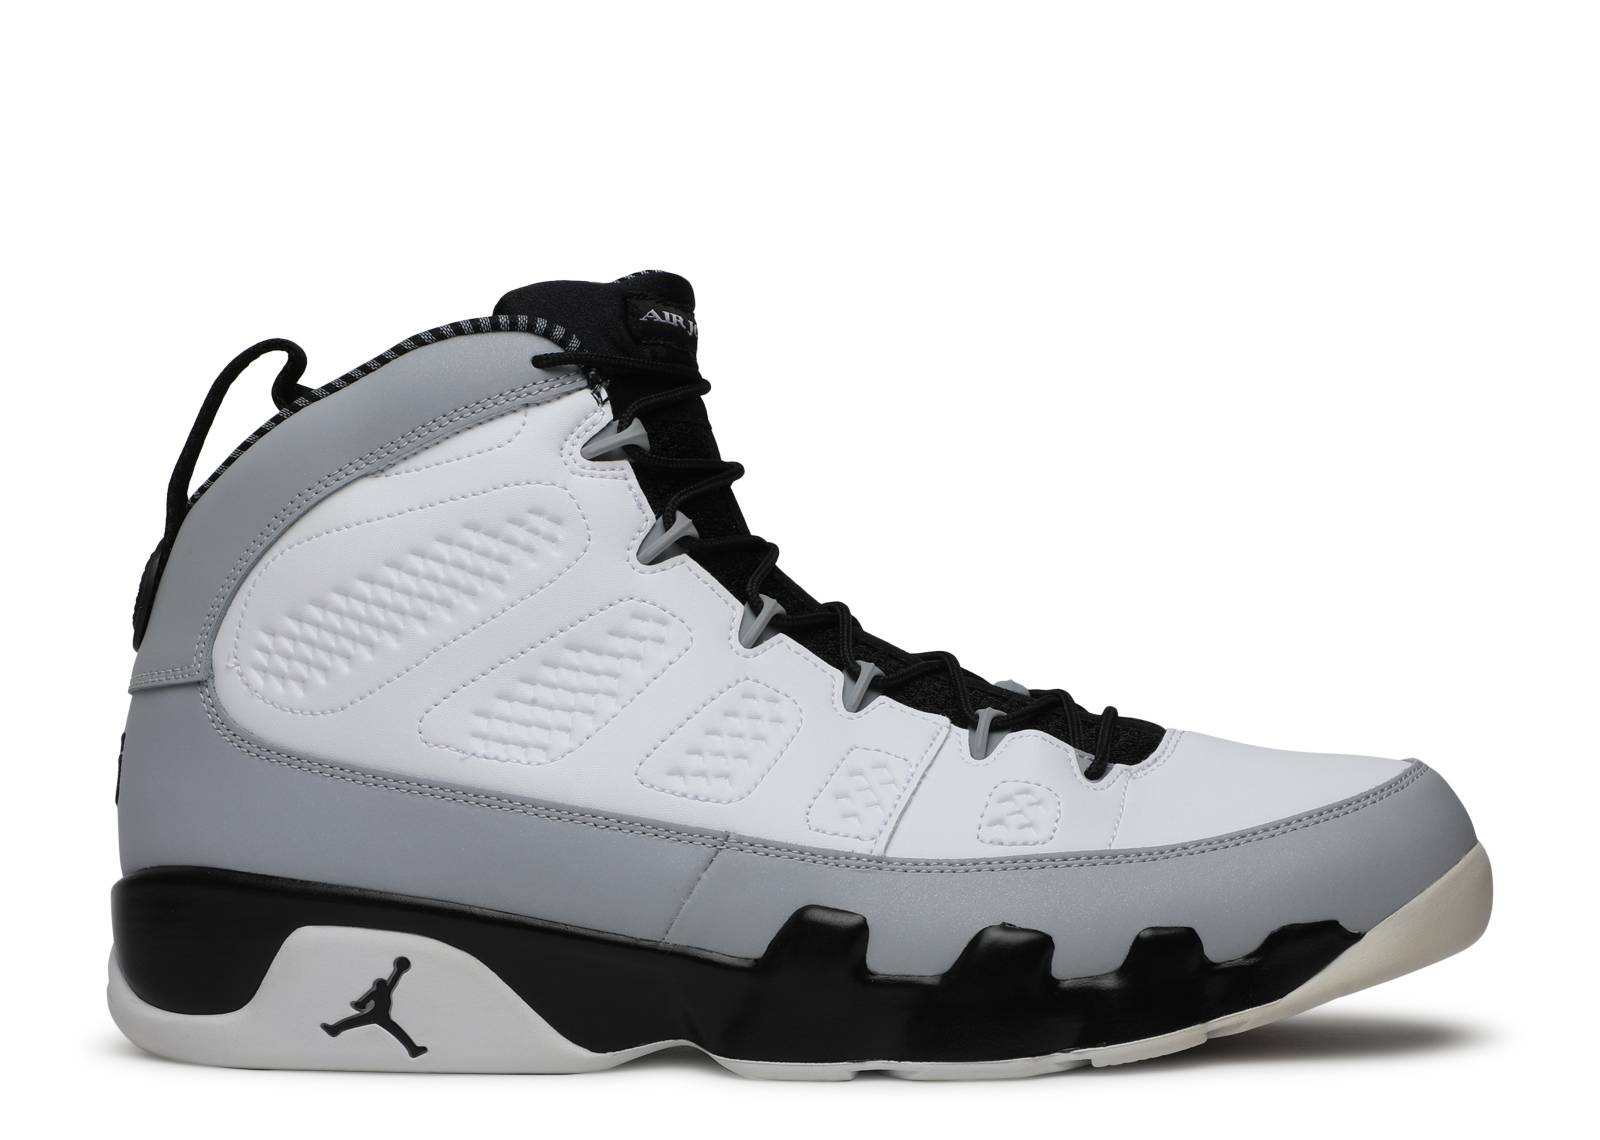 Air Jordan 9 Sala De Retro Chicos Footaction aclaramiento I1z3BTAL9